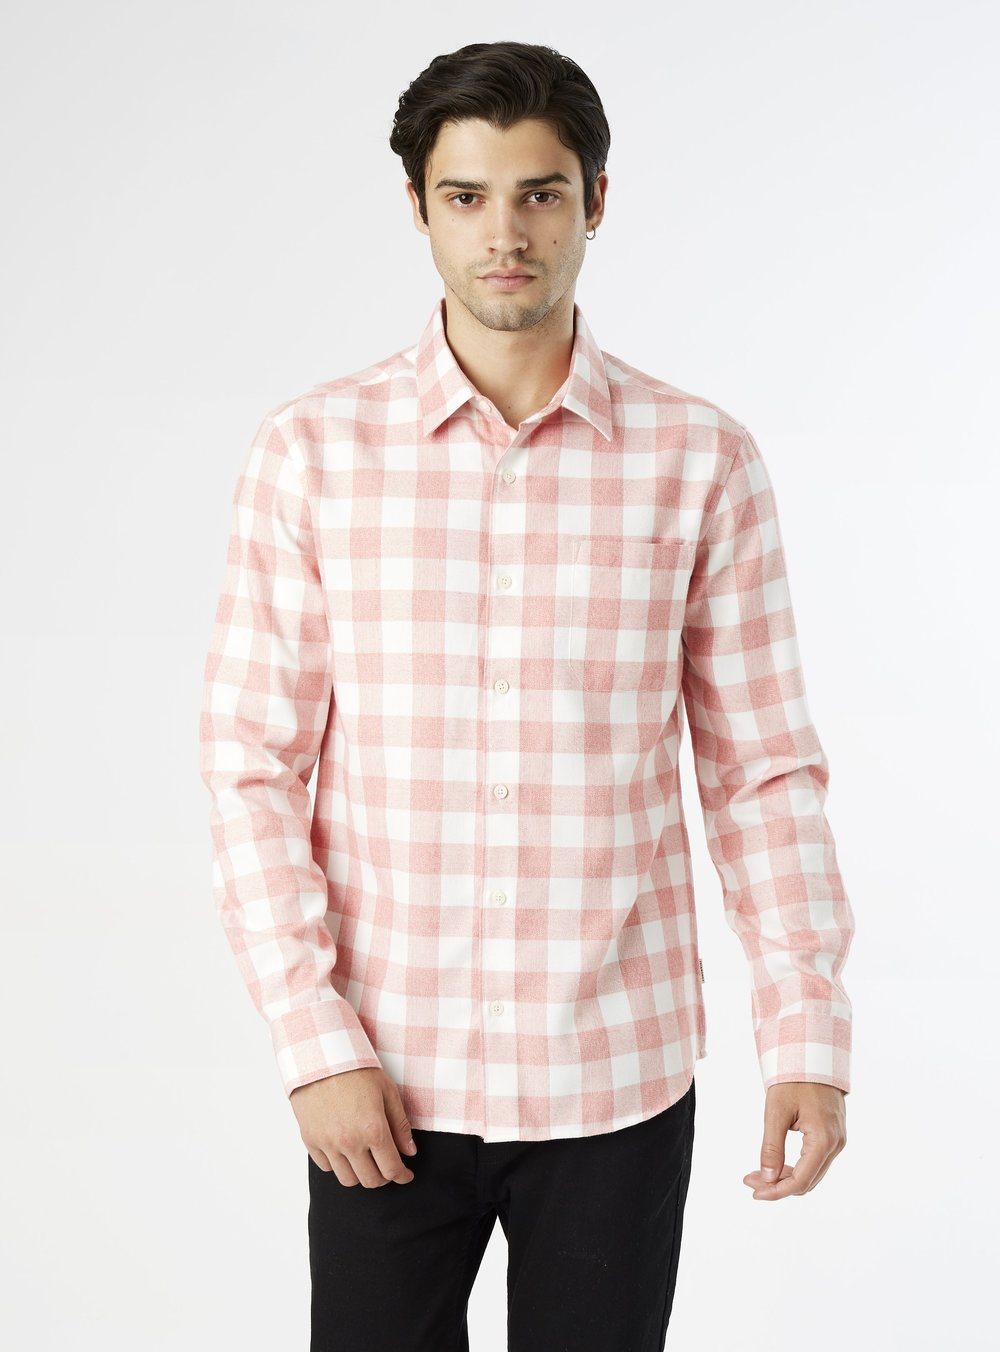 SMKF-1235-CORALWHITE-7DIAMONDS-FLANNEL-2.jpg